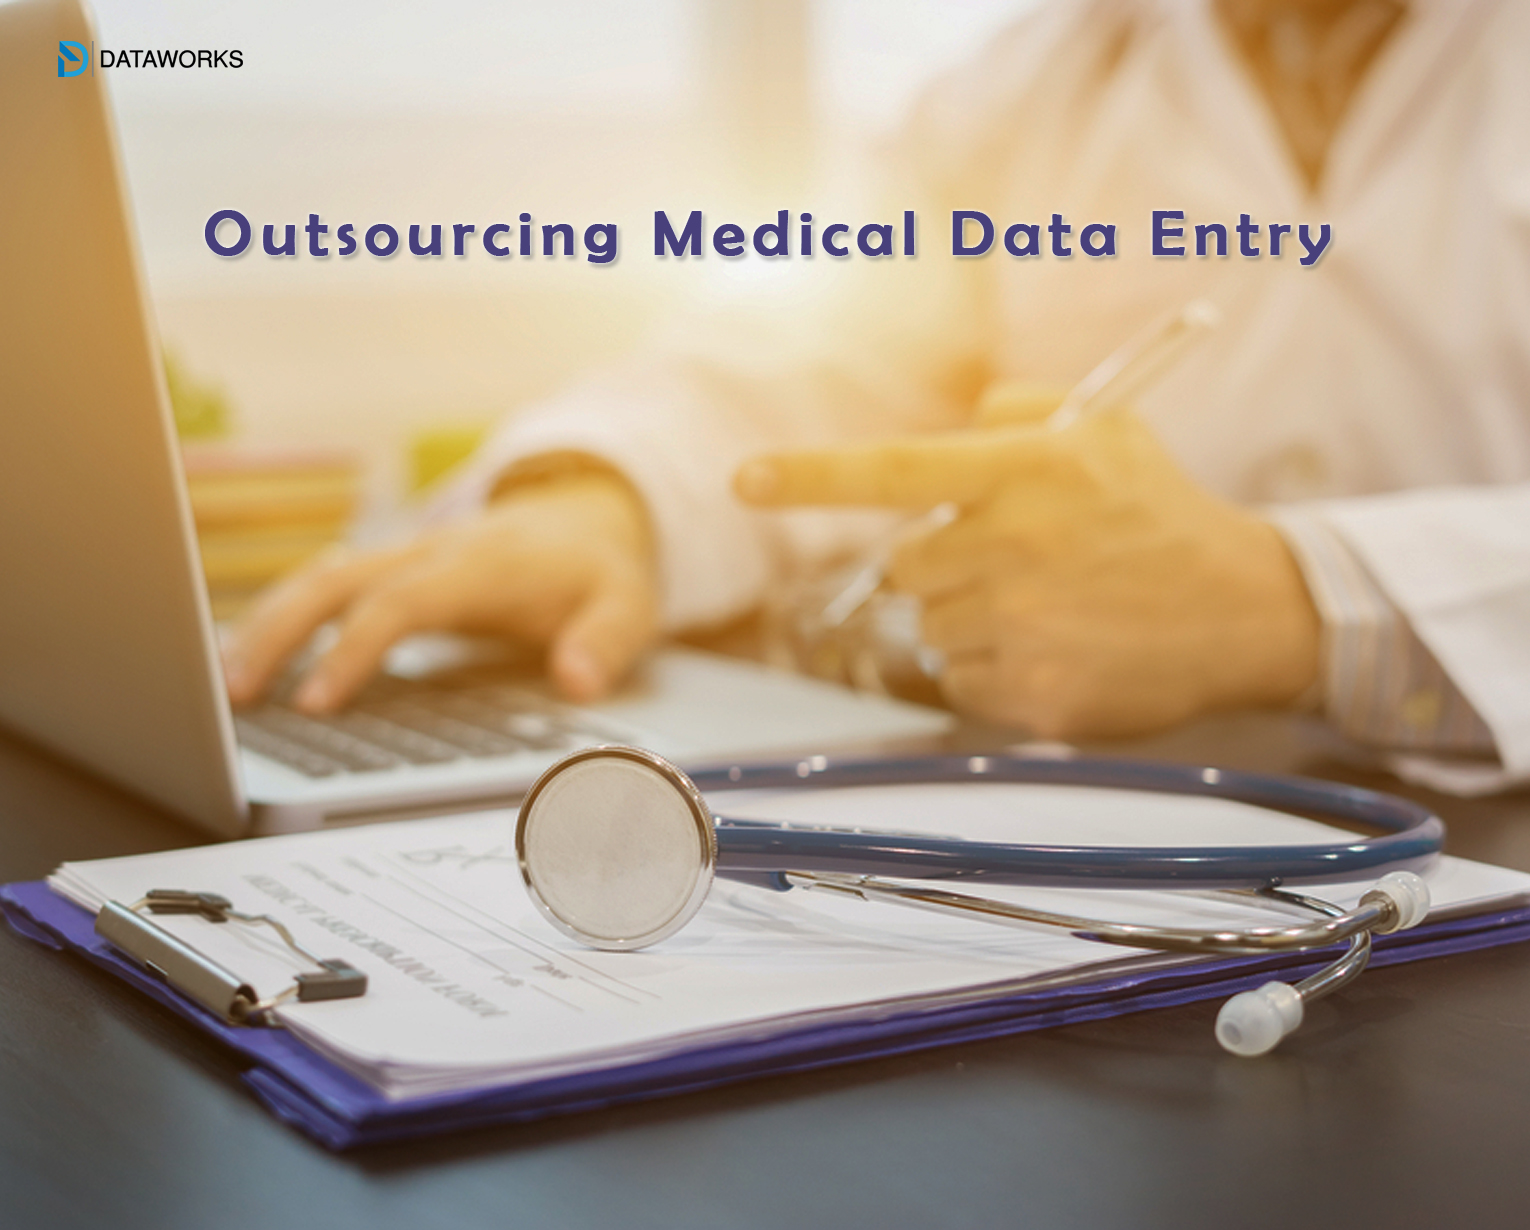 How does outsourcing medical data entry benefit health care industries?